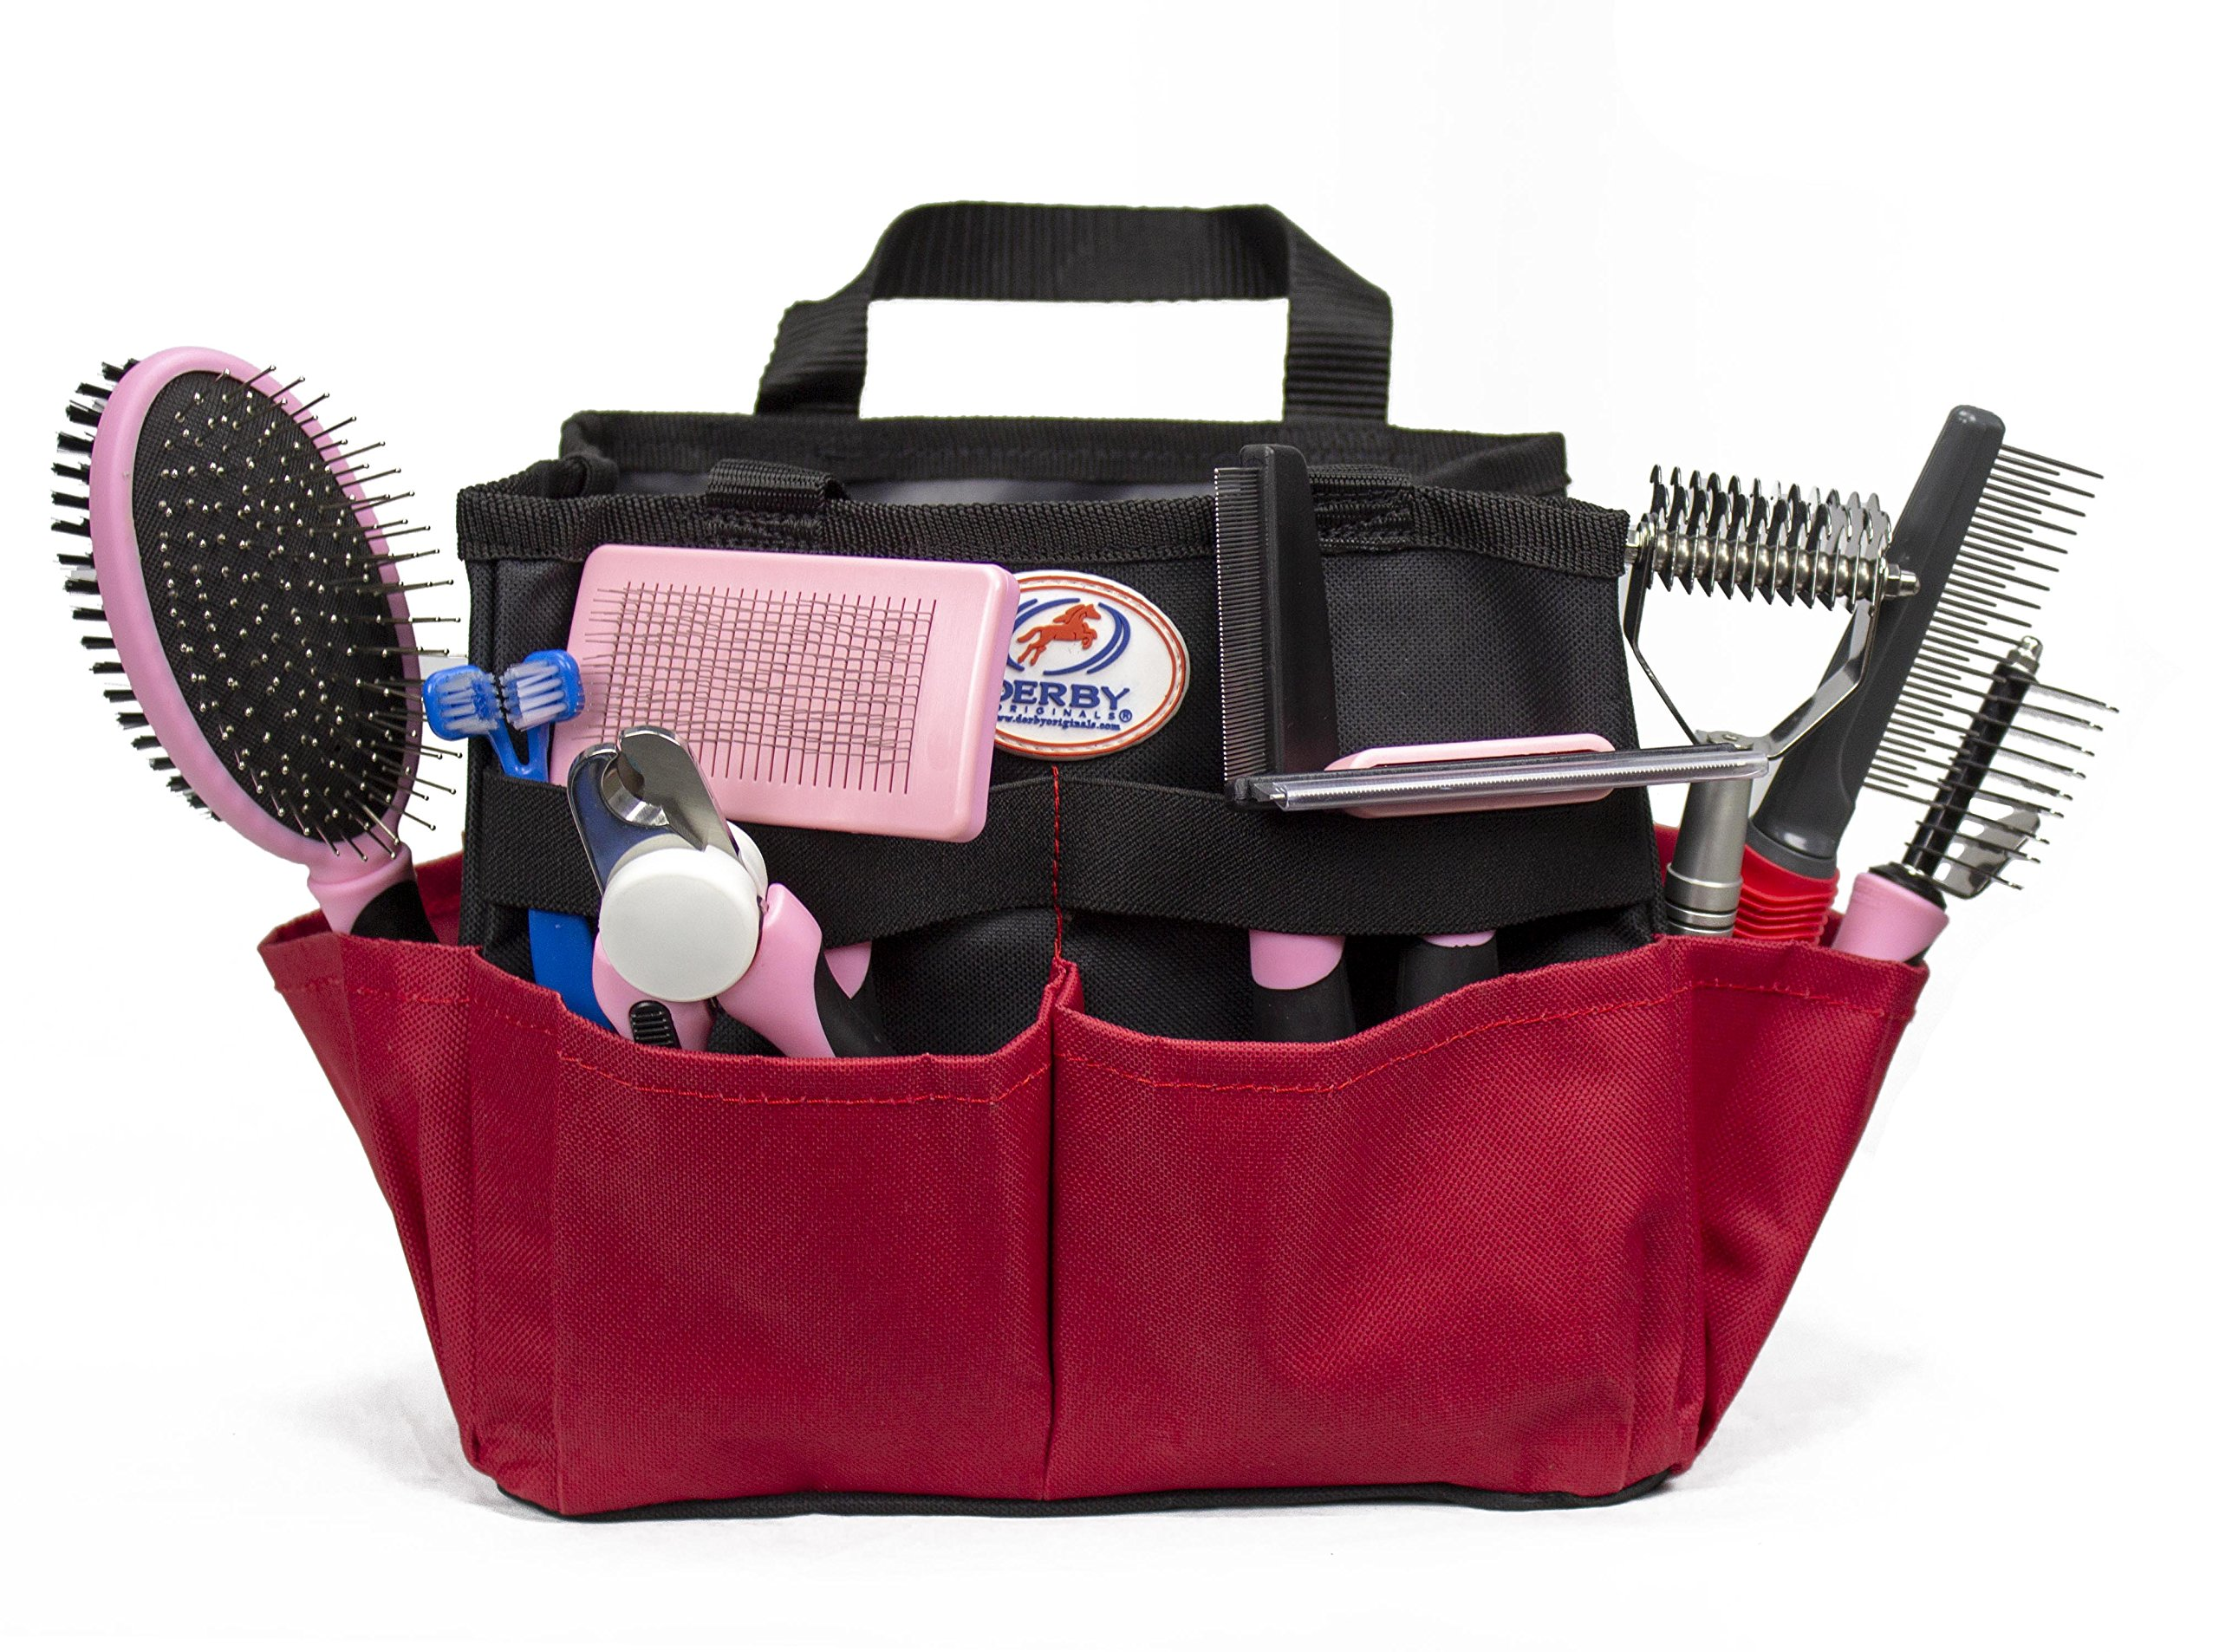 cuteNfuzzy 11 Piece New Pet Small or Large Grooming Starter Kits in 2 Colors for Dogs & Cats, Pink, Large